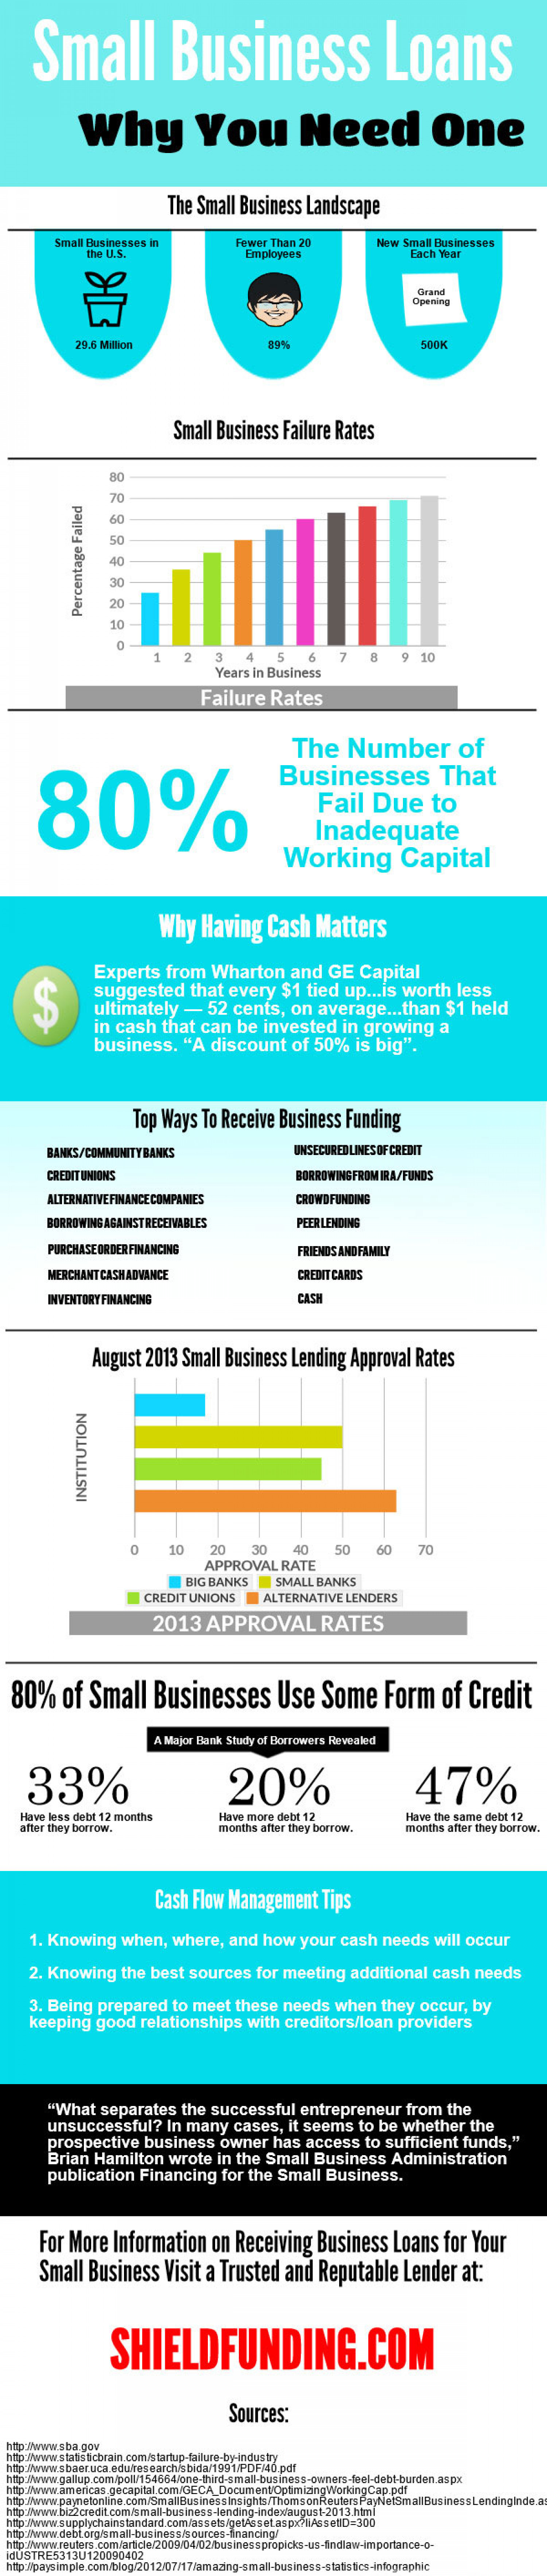 Small Business Loans: why you need one  Infographic